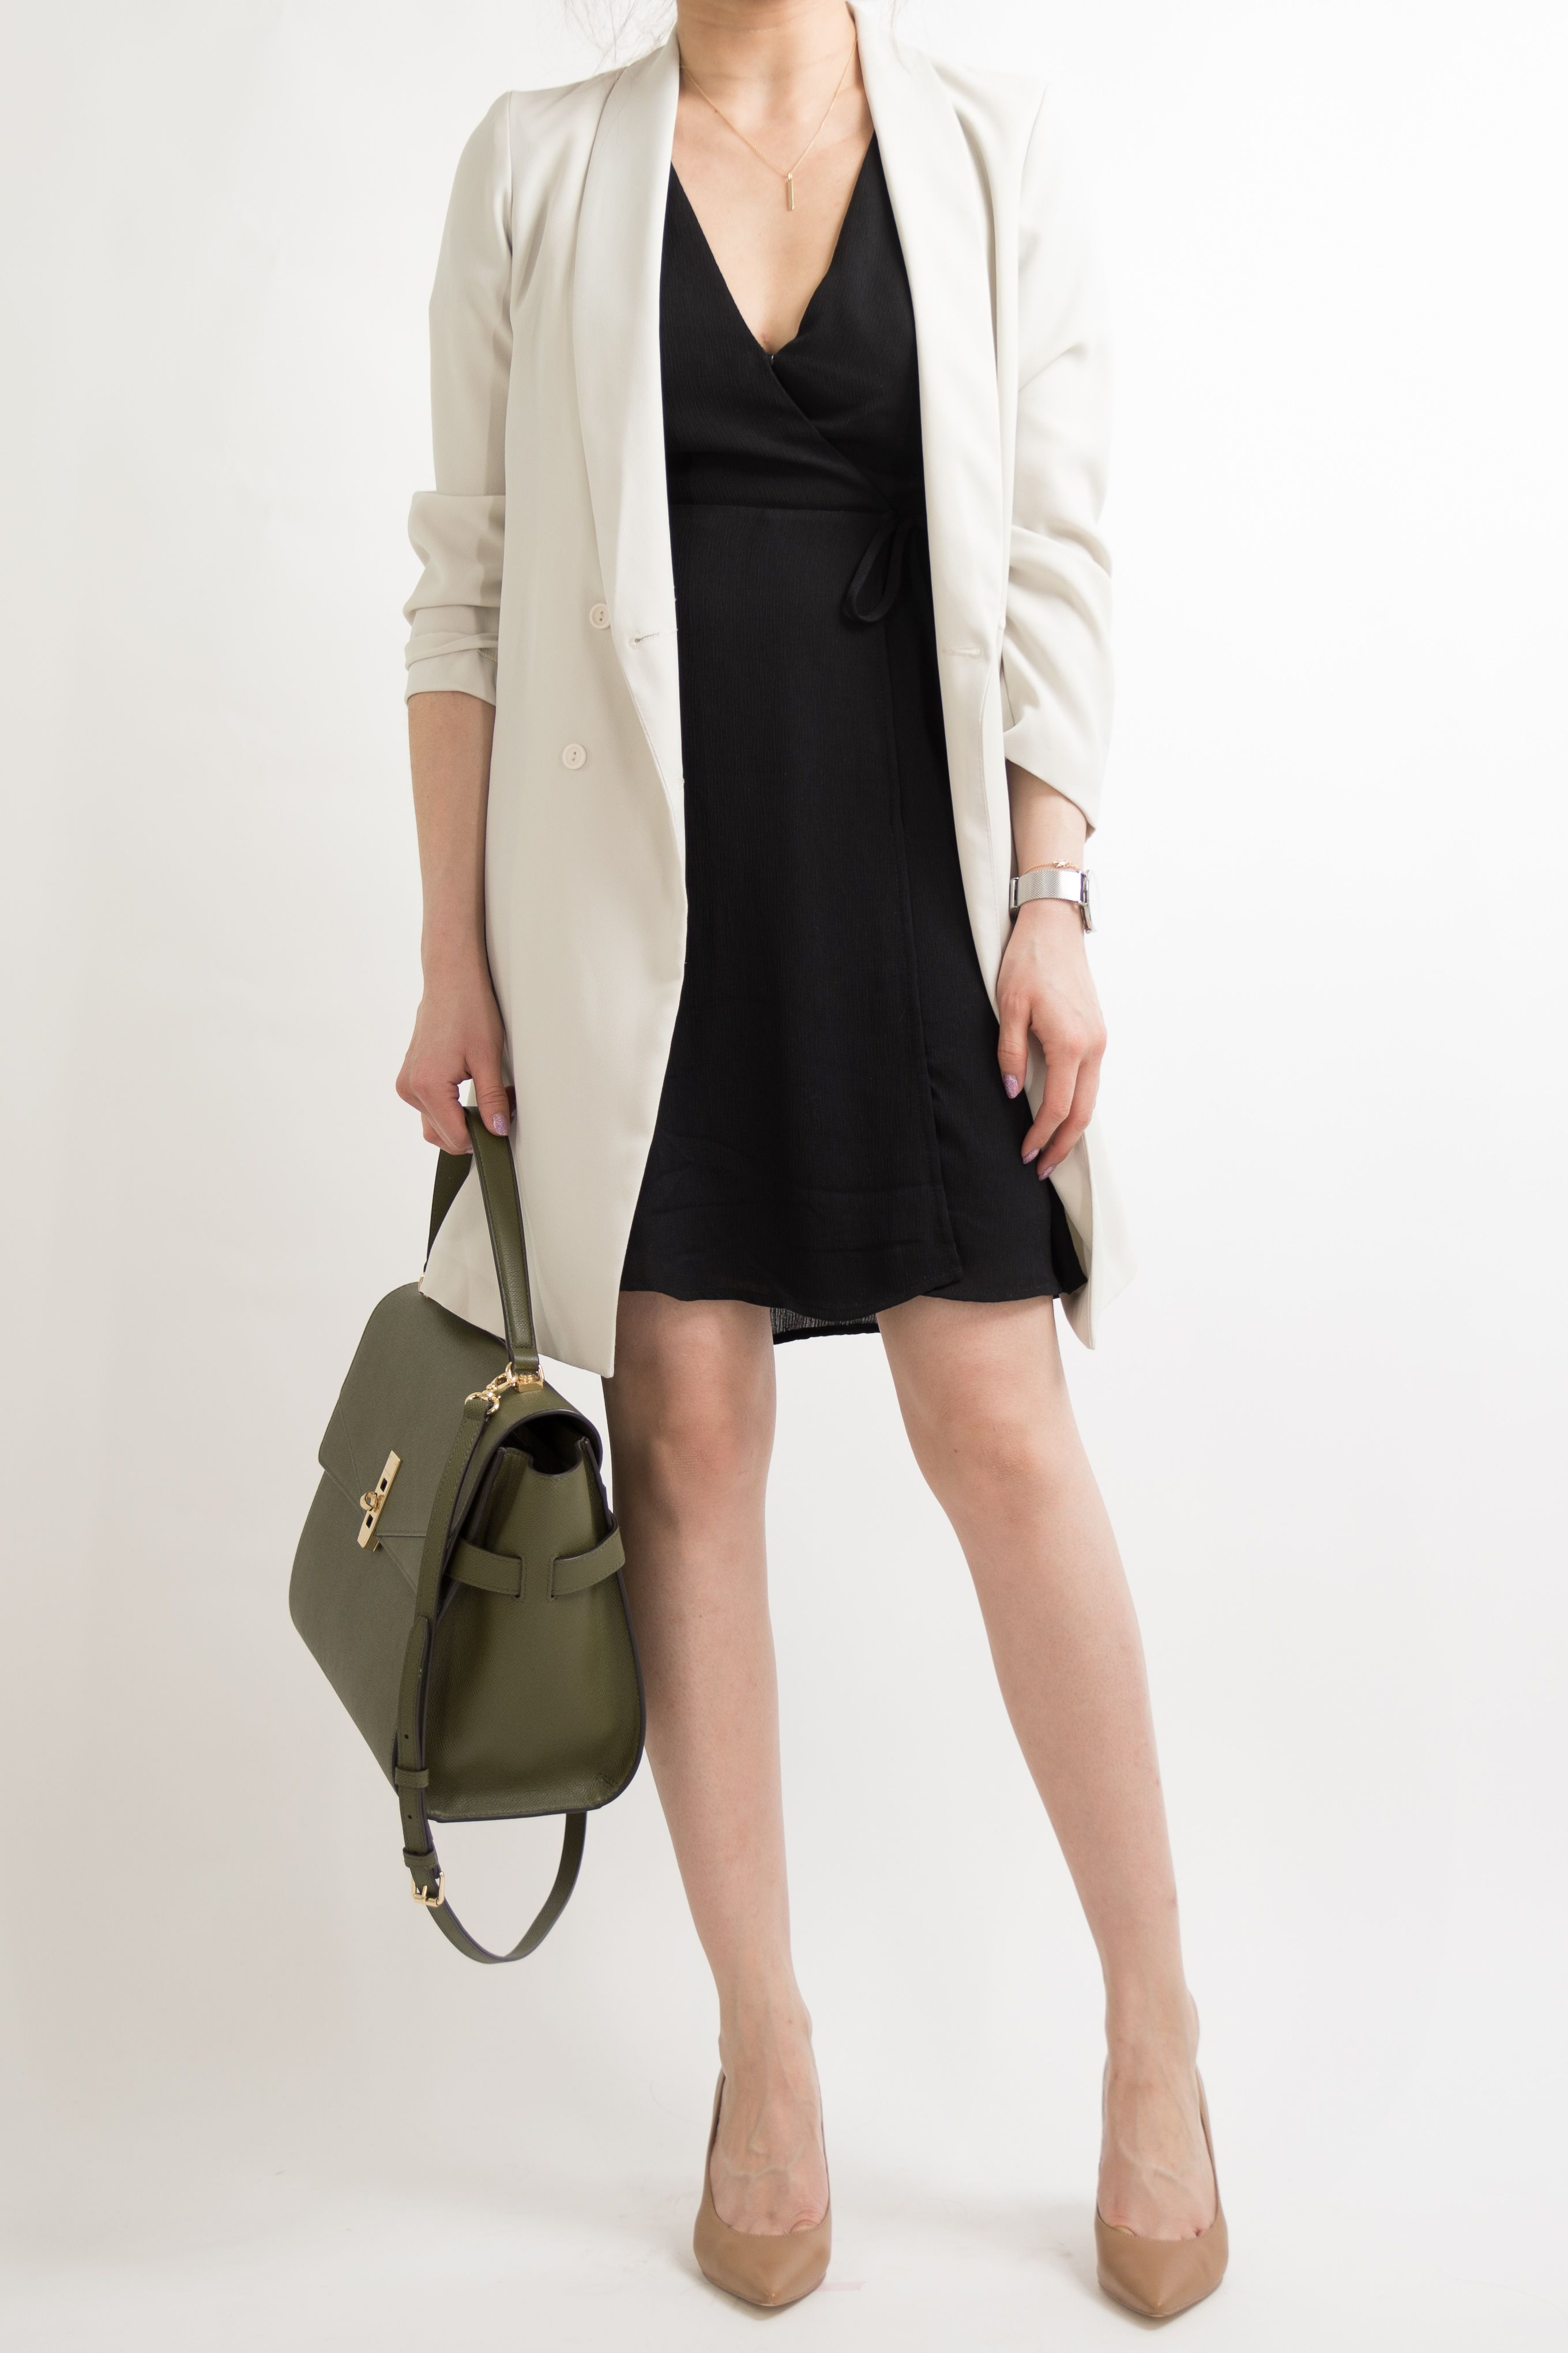 29a17e259b5 business-casual-women-work-office-professional-outfit-ideas-miss-louie-48